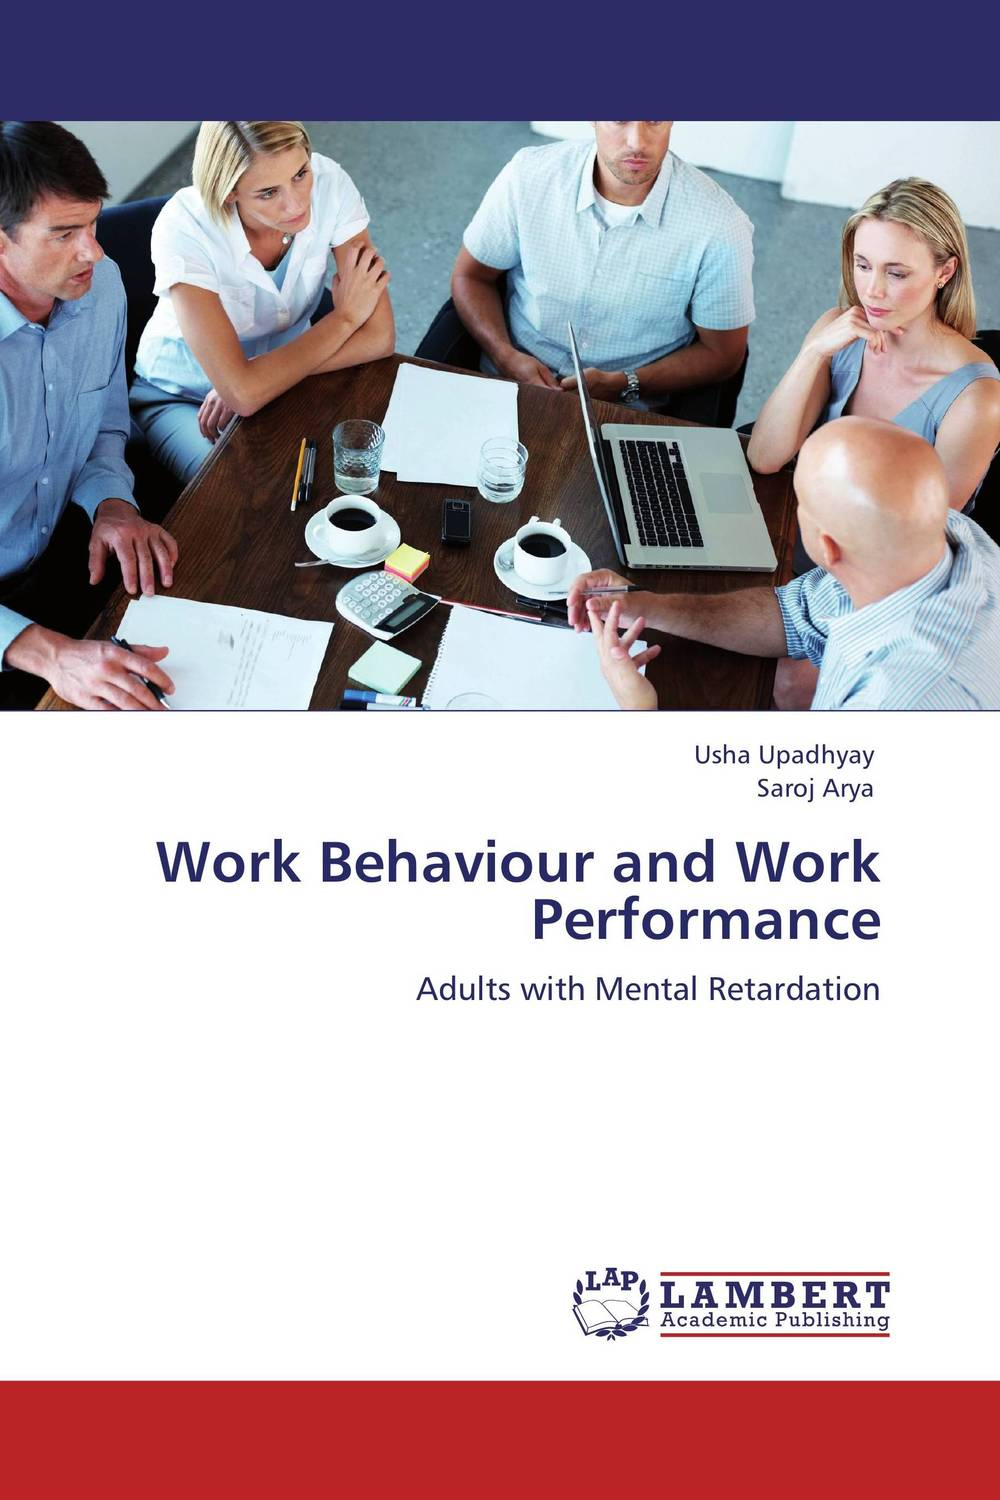 Work Behaviour and Work Performance